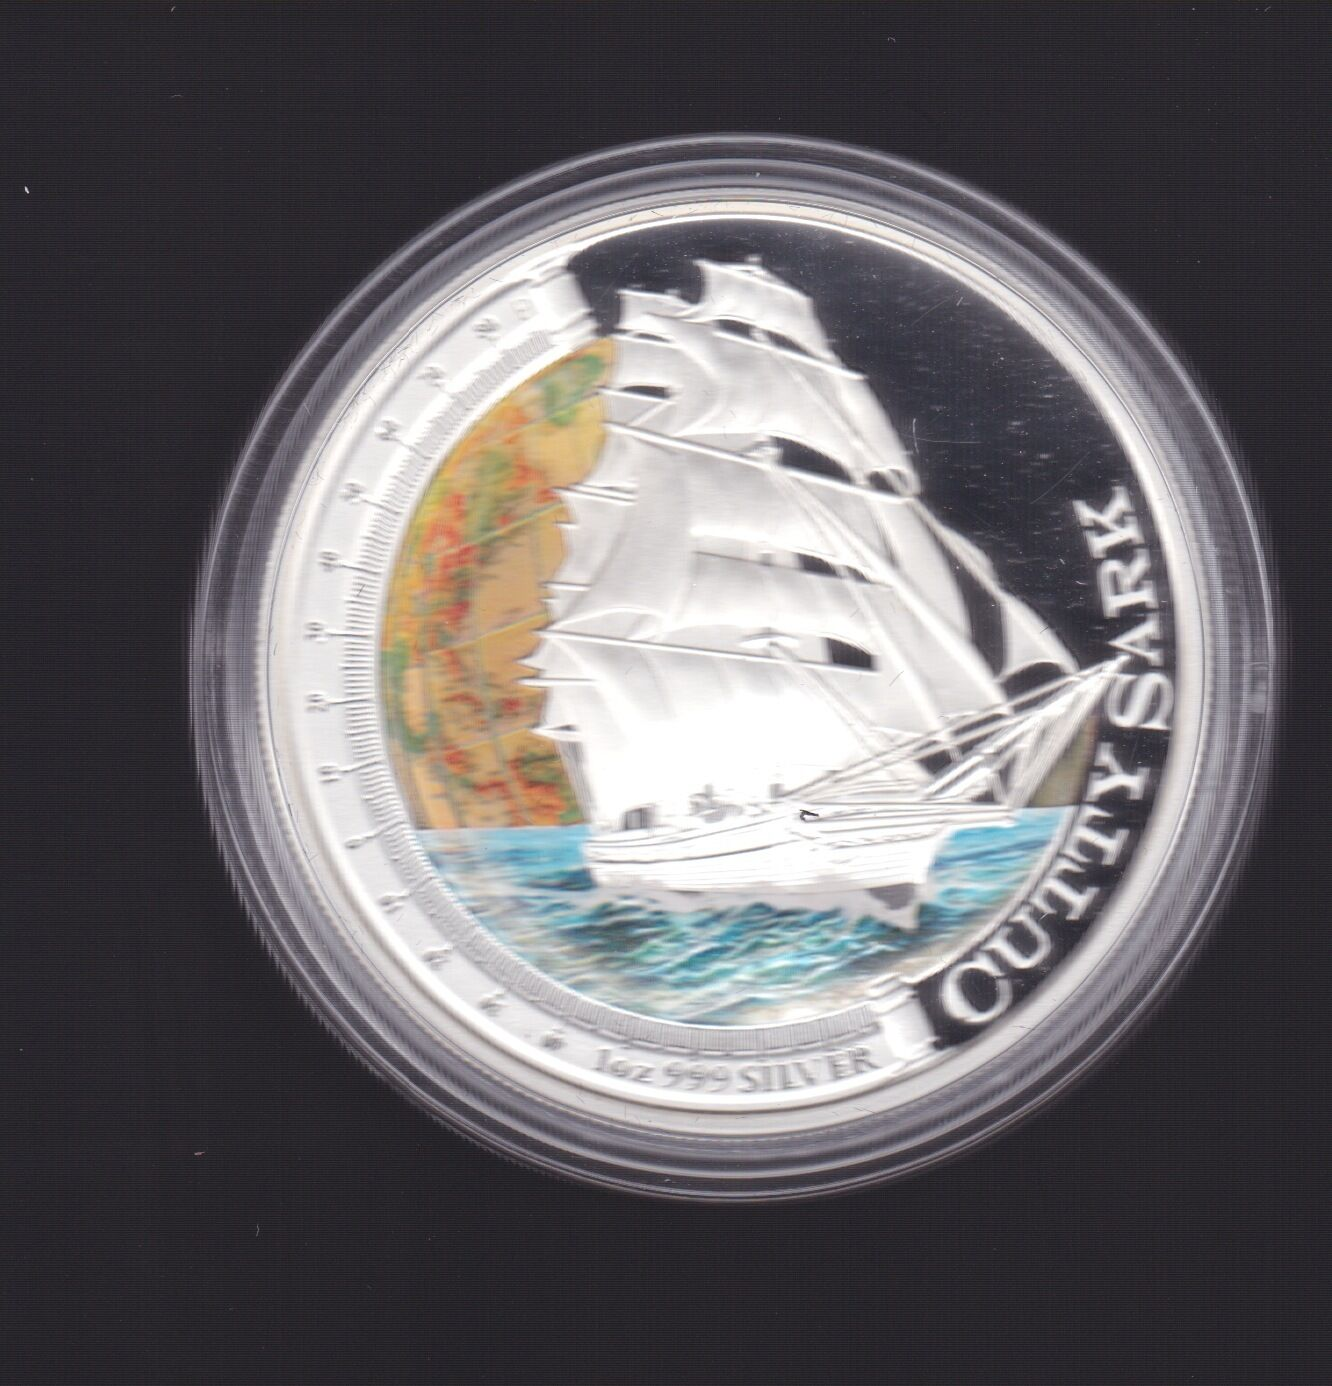 """2012 MAYFLOWER /""""SHIPS THAT CHANGED THE WORLD/"""" 1oz Silver Proof Coin"""